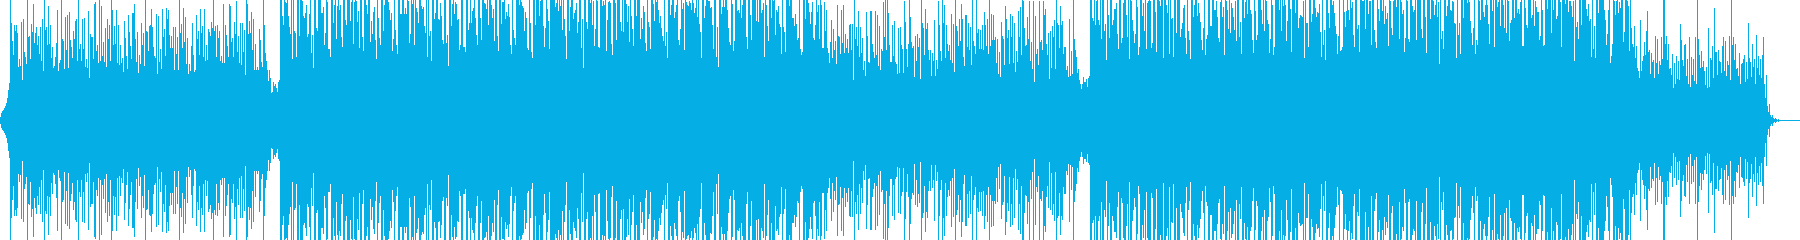 BGM that is positive and steadily progressing's reproduced waveform